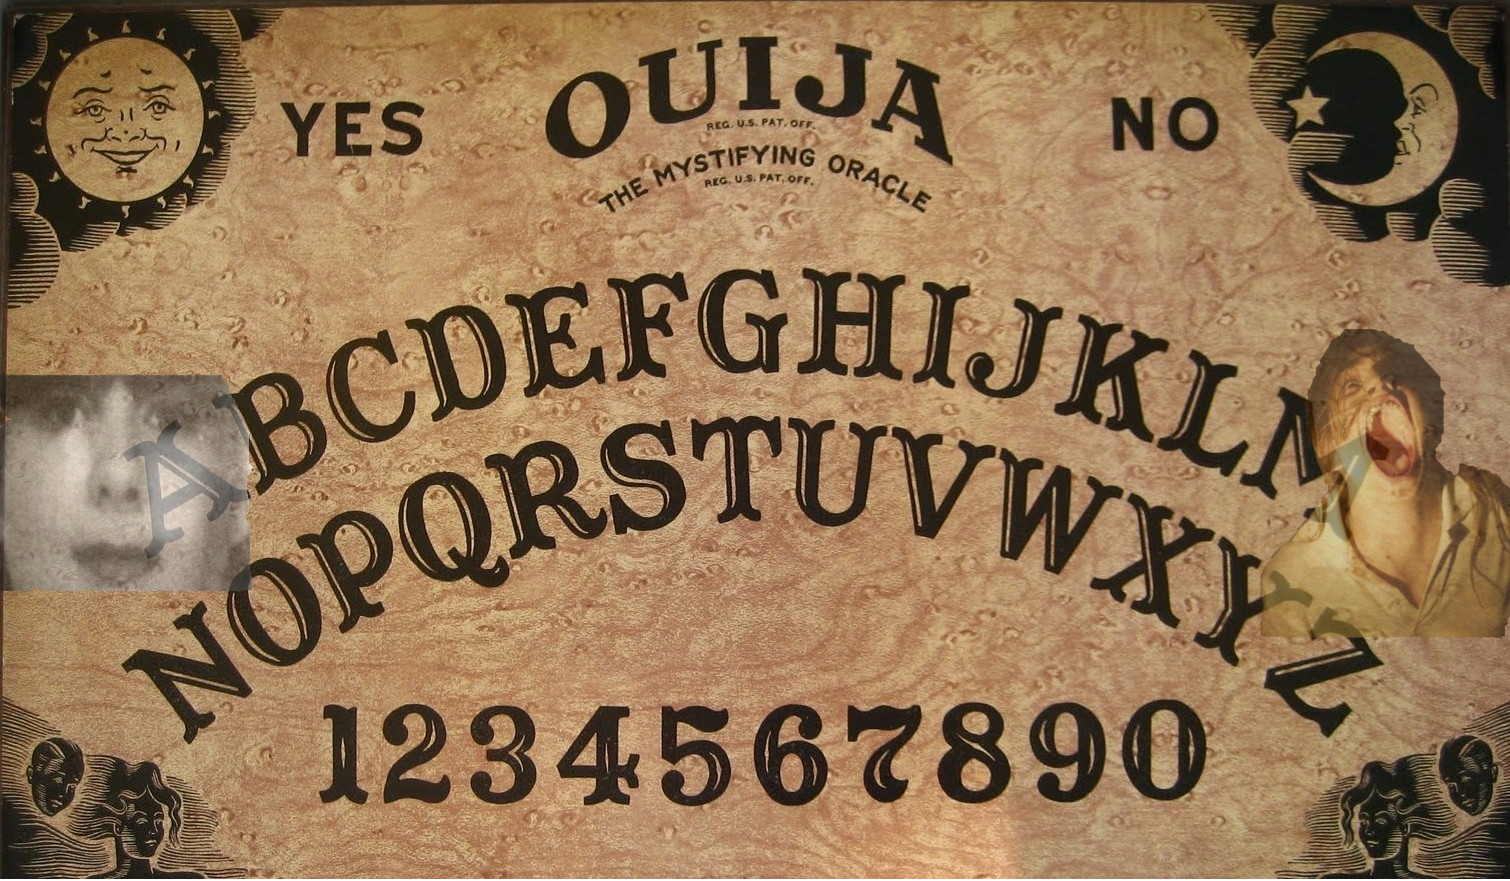 The Ouija that unleashed the nightmare. The Vallecas case (part 2)